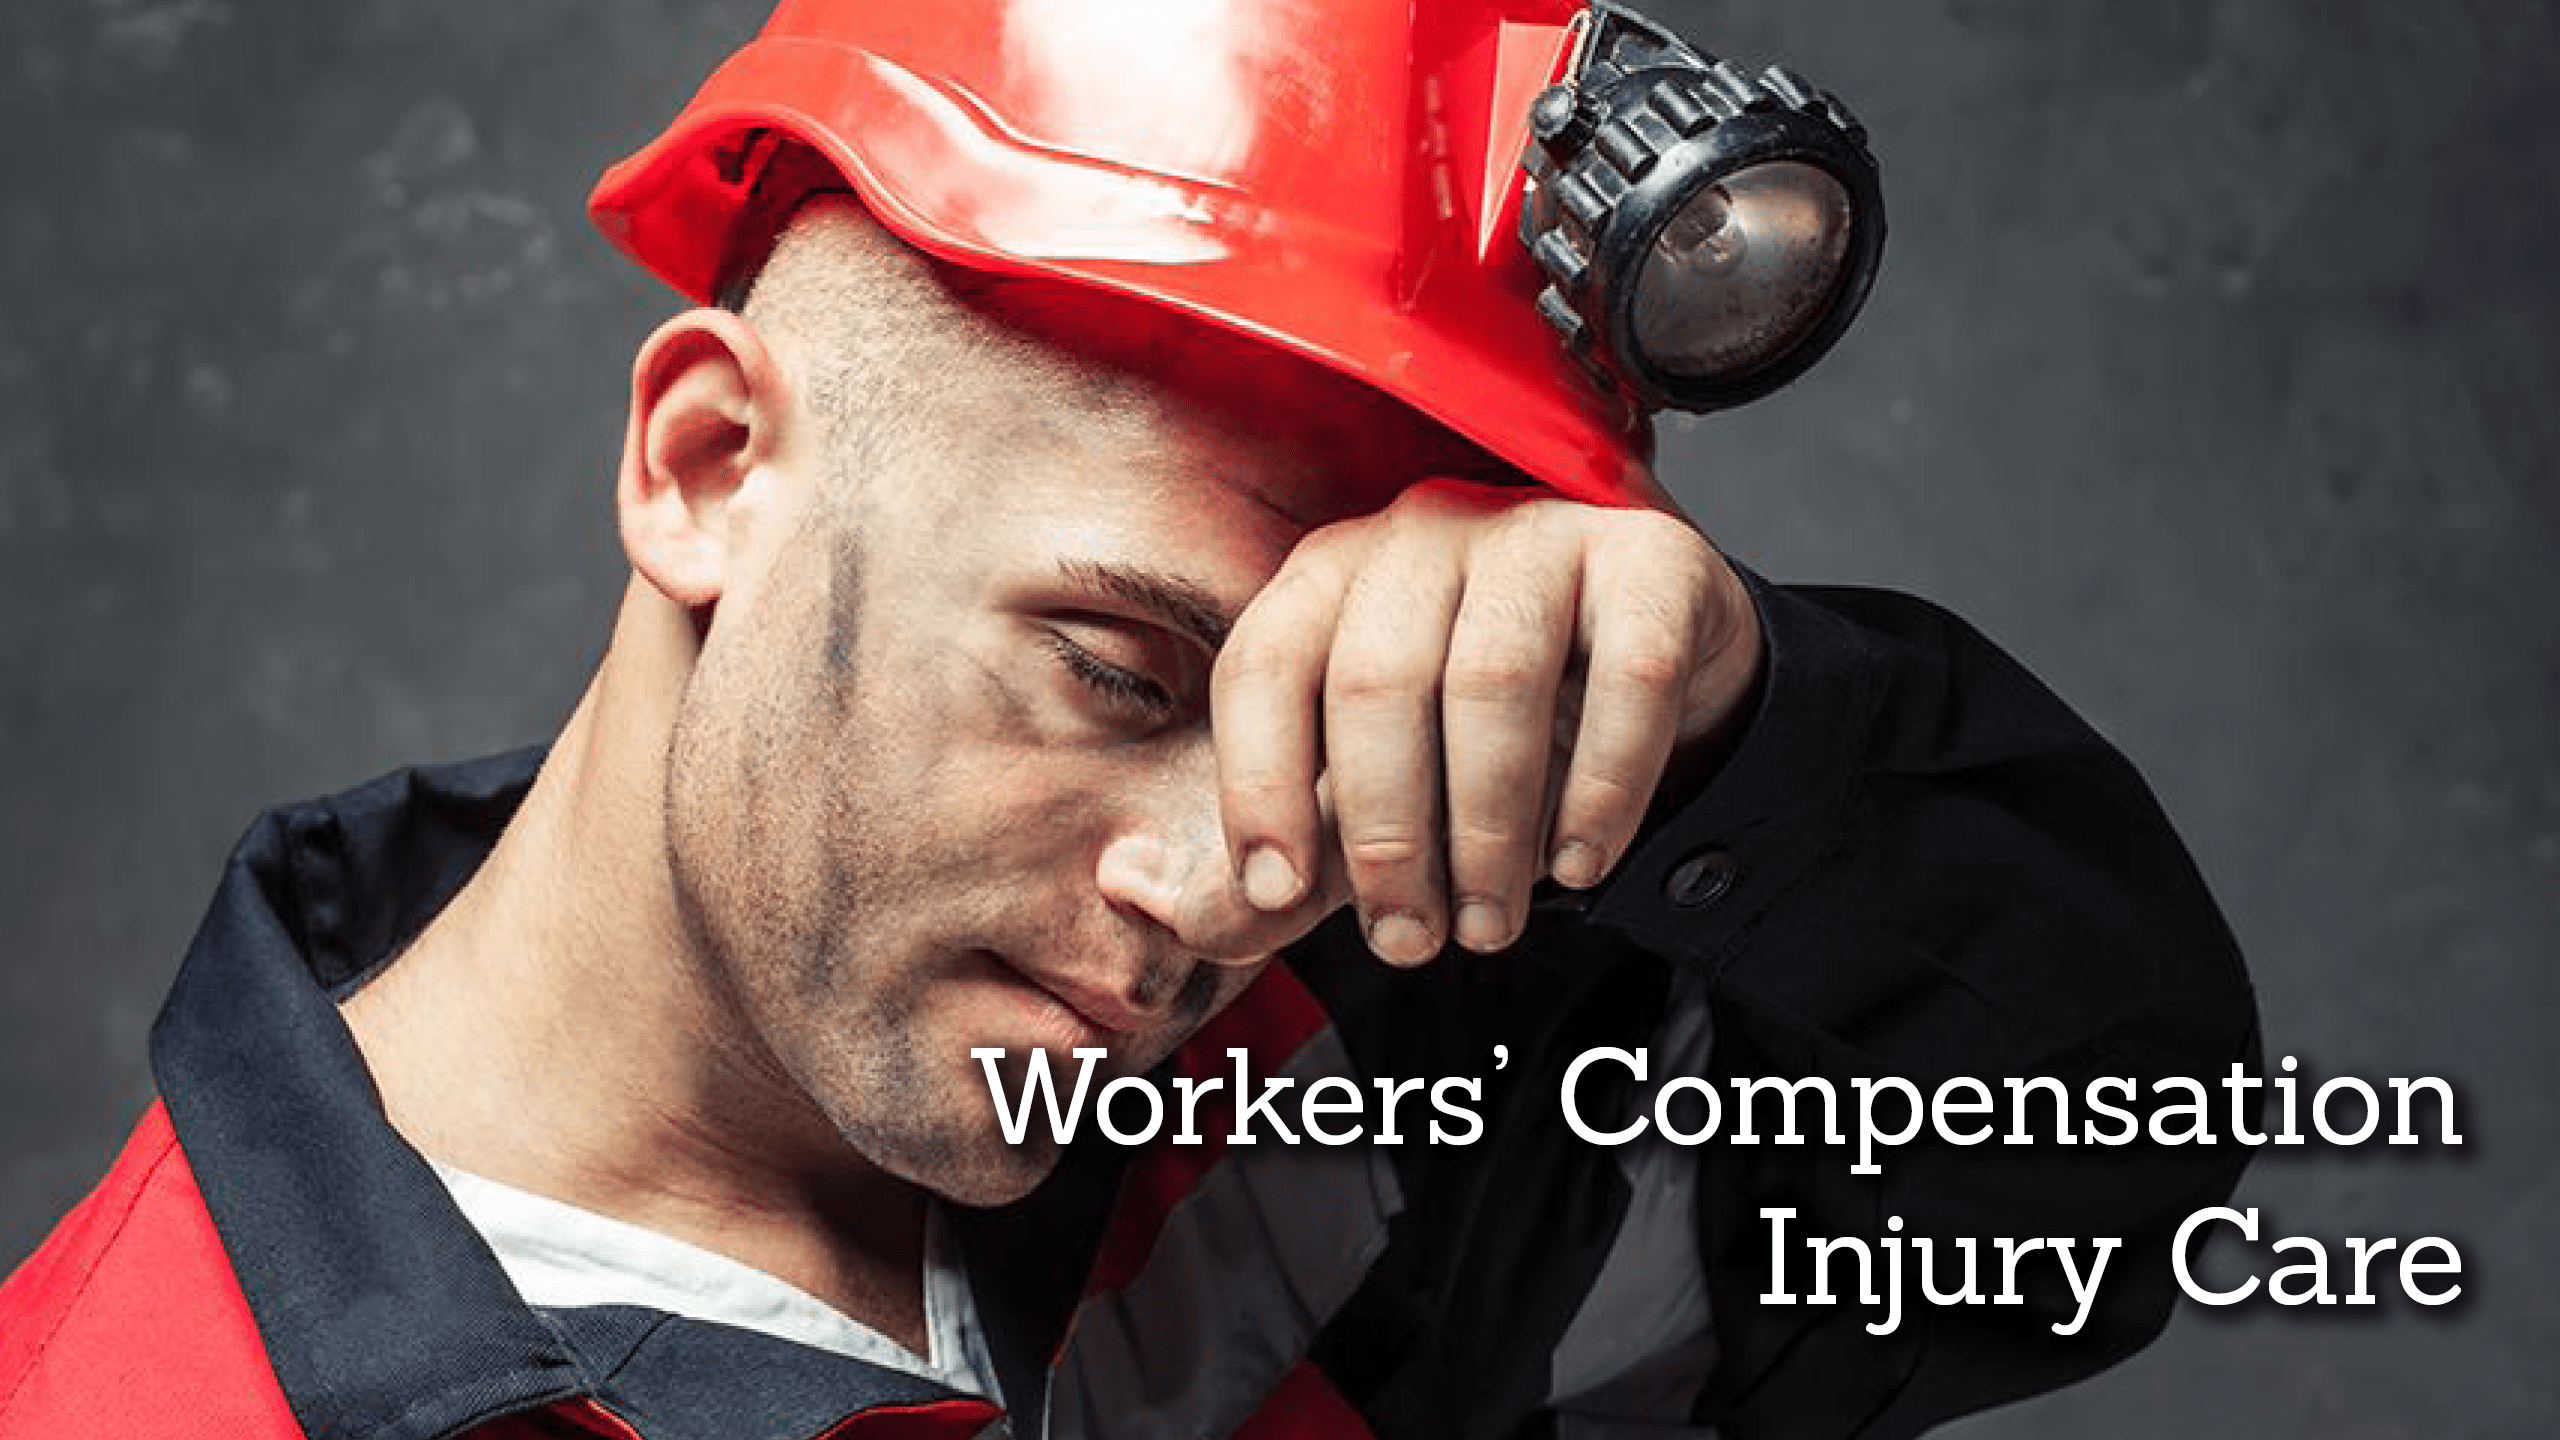 Workers' Compensation Care With Worksite Medical®